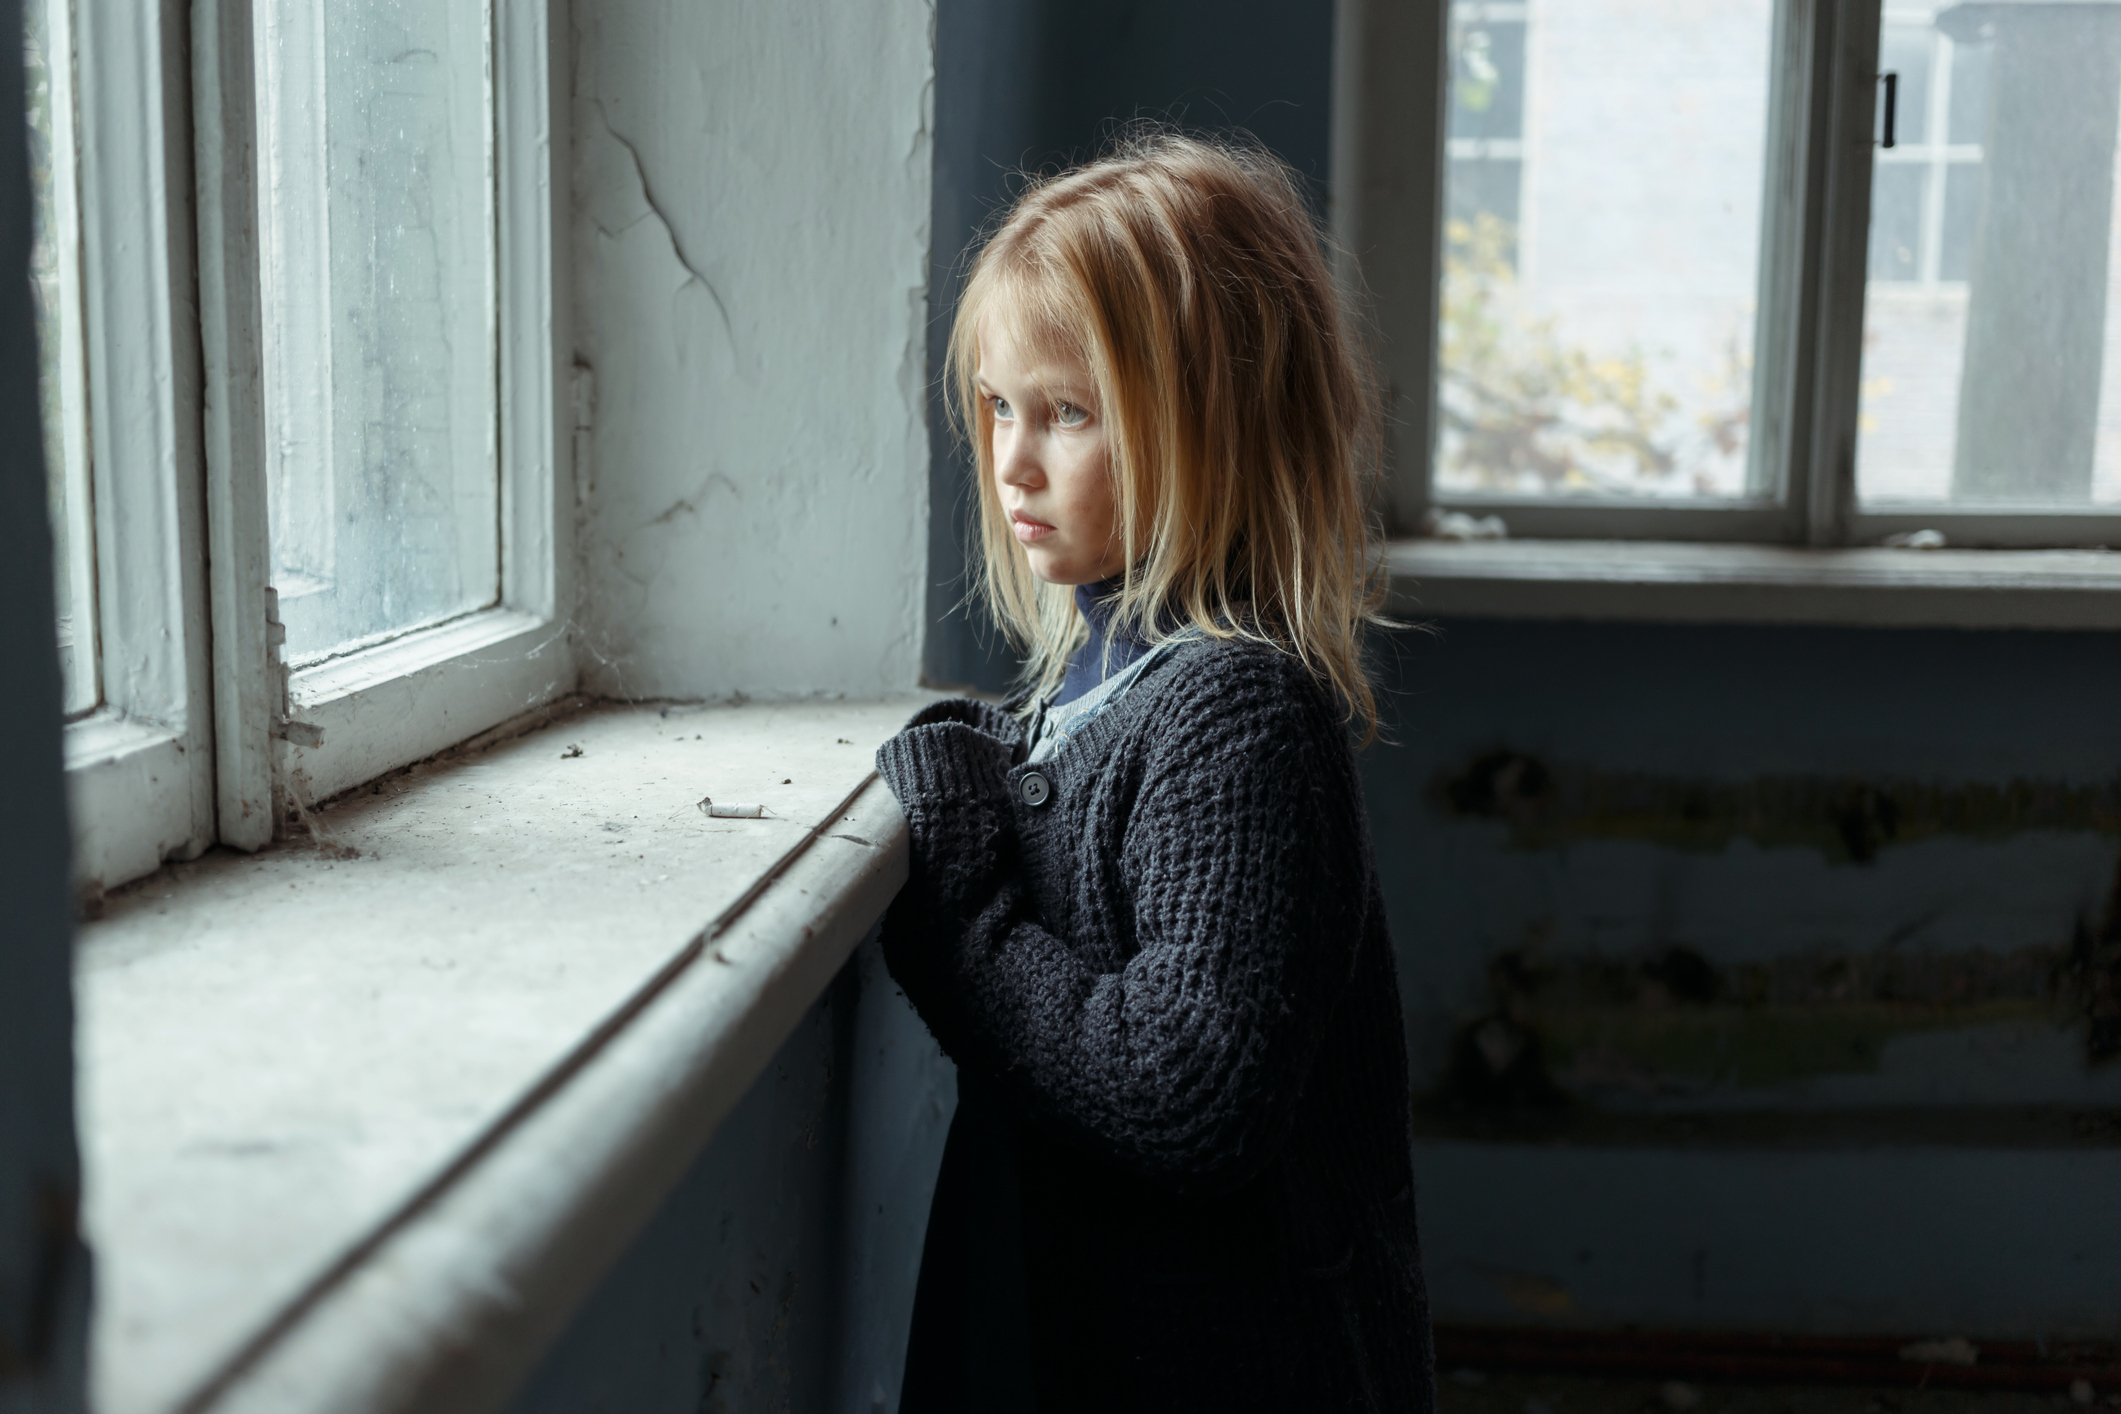 Around a third of children in Redditch are growing up in poverty, shocking new figures reveal. Picture: Getty Images.